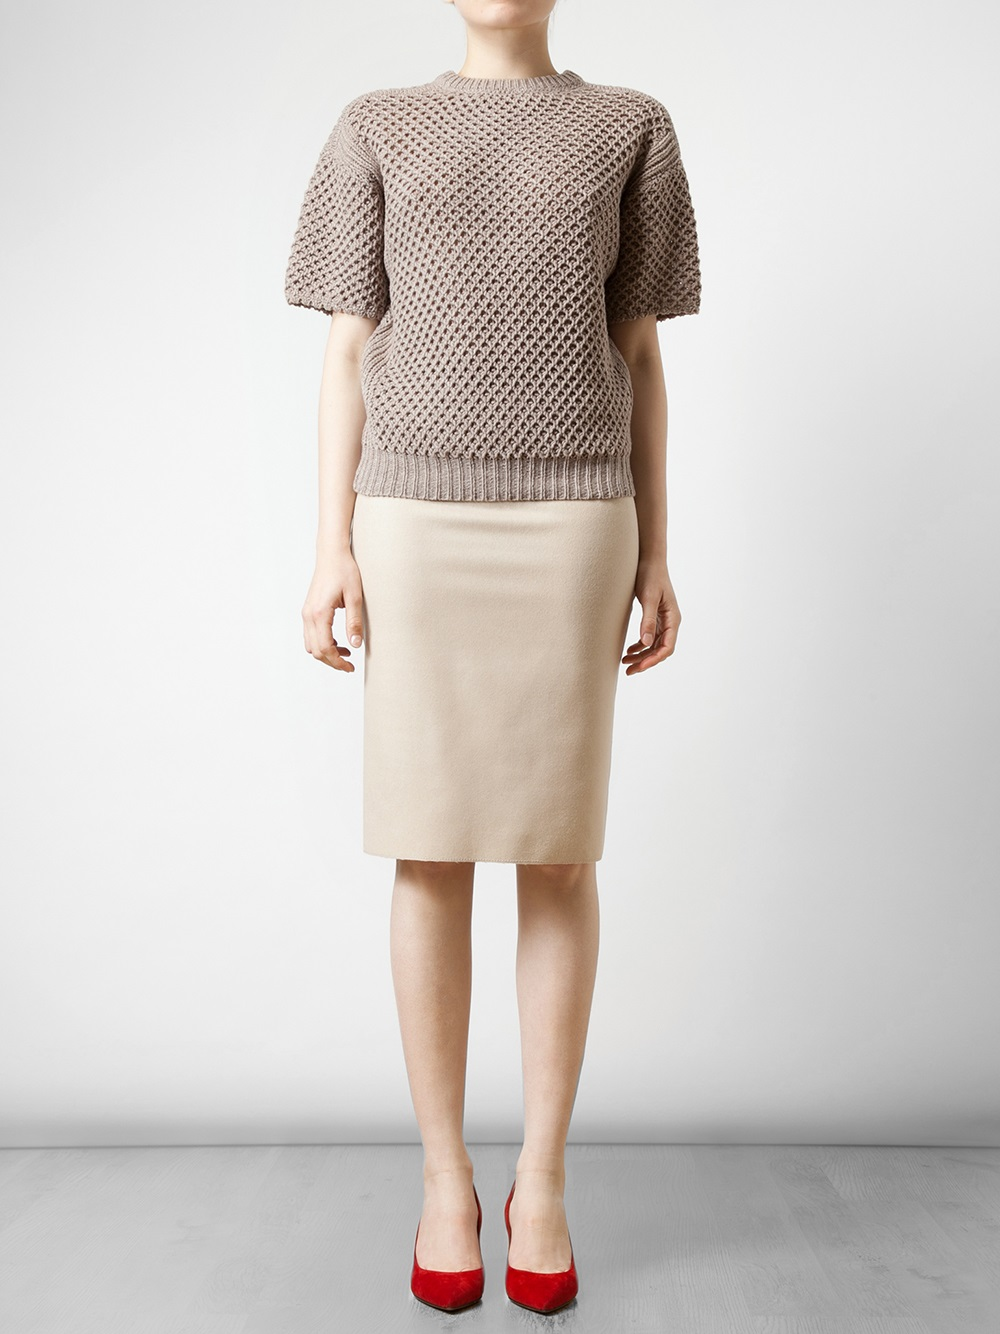 Nina ricci Virgin Wool and Stretch Knit Pencil Skirt in Natural | Lyst